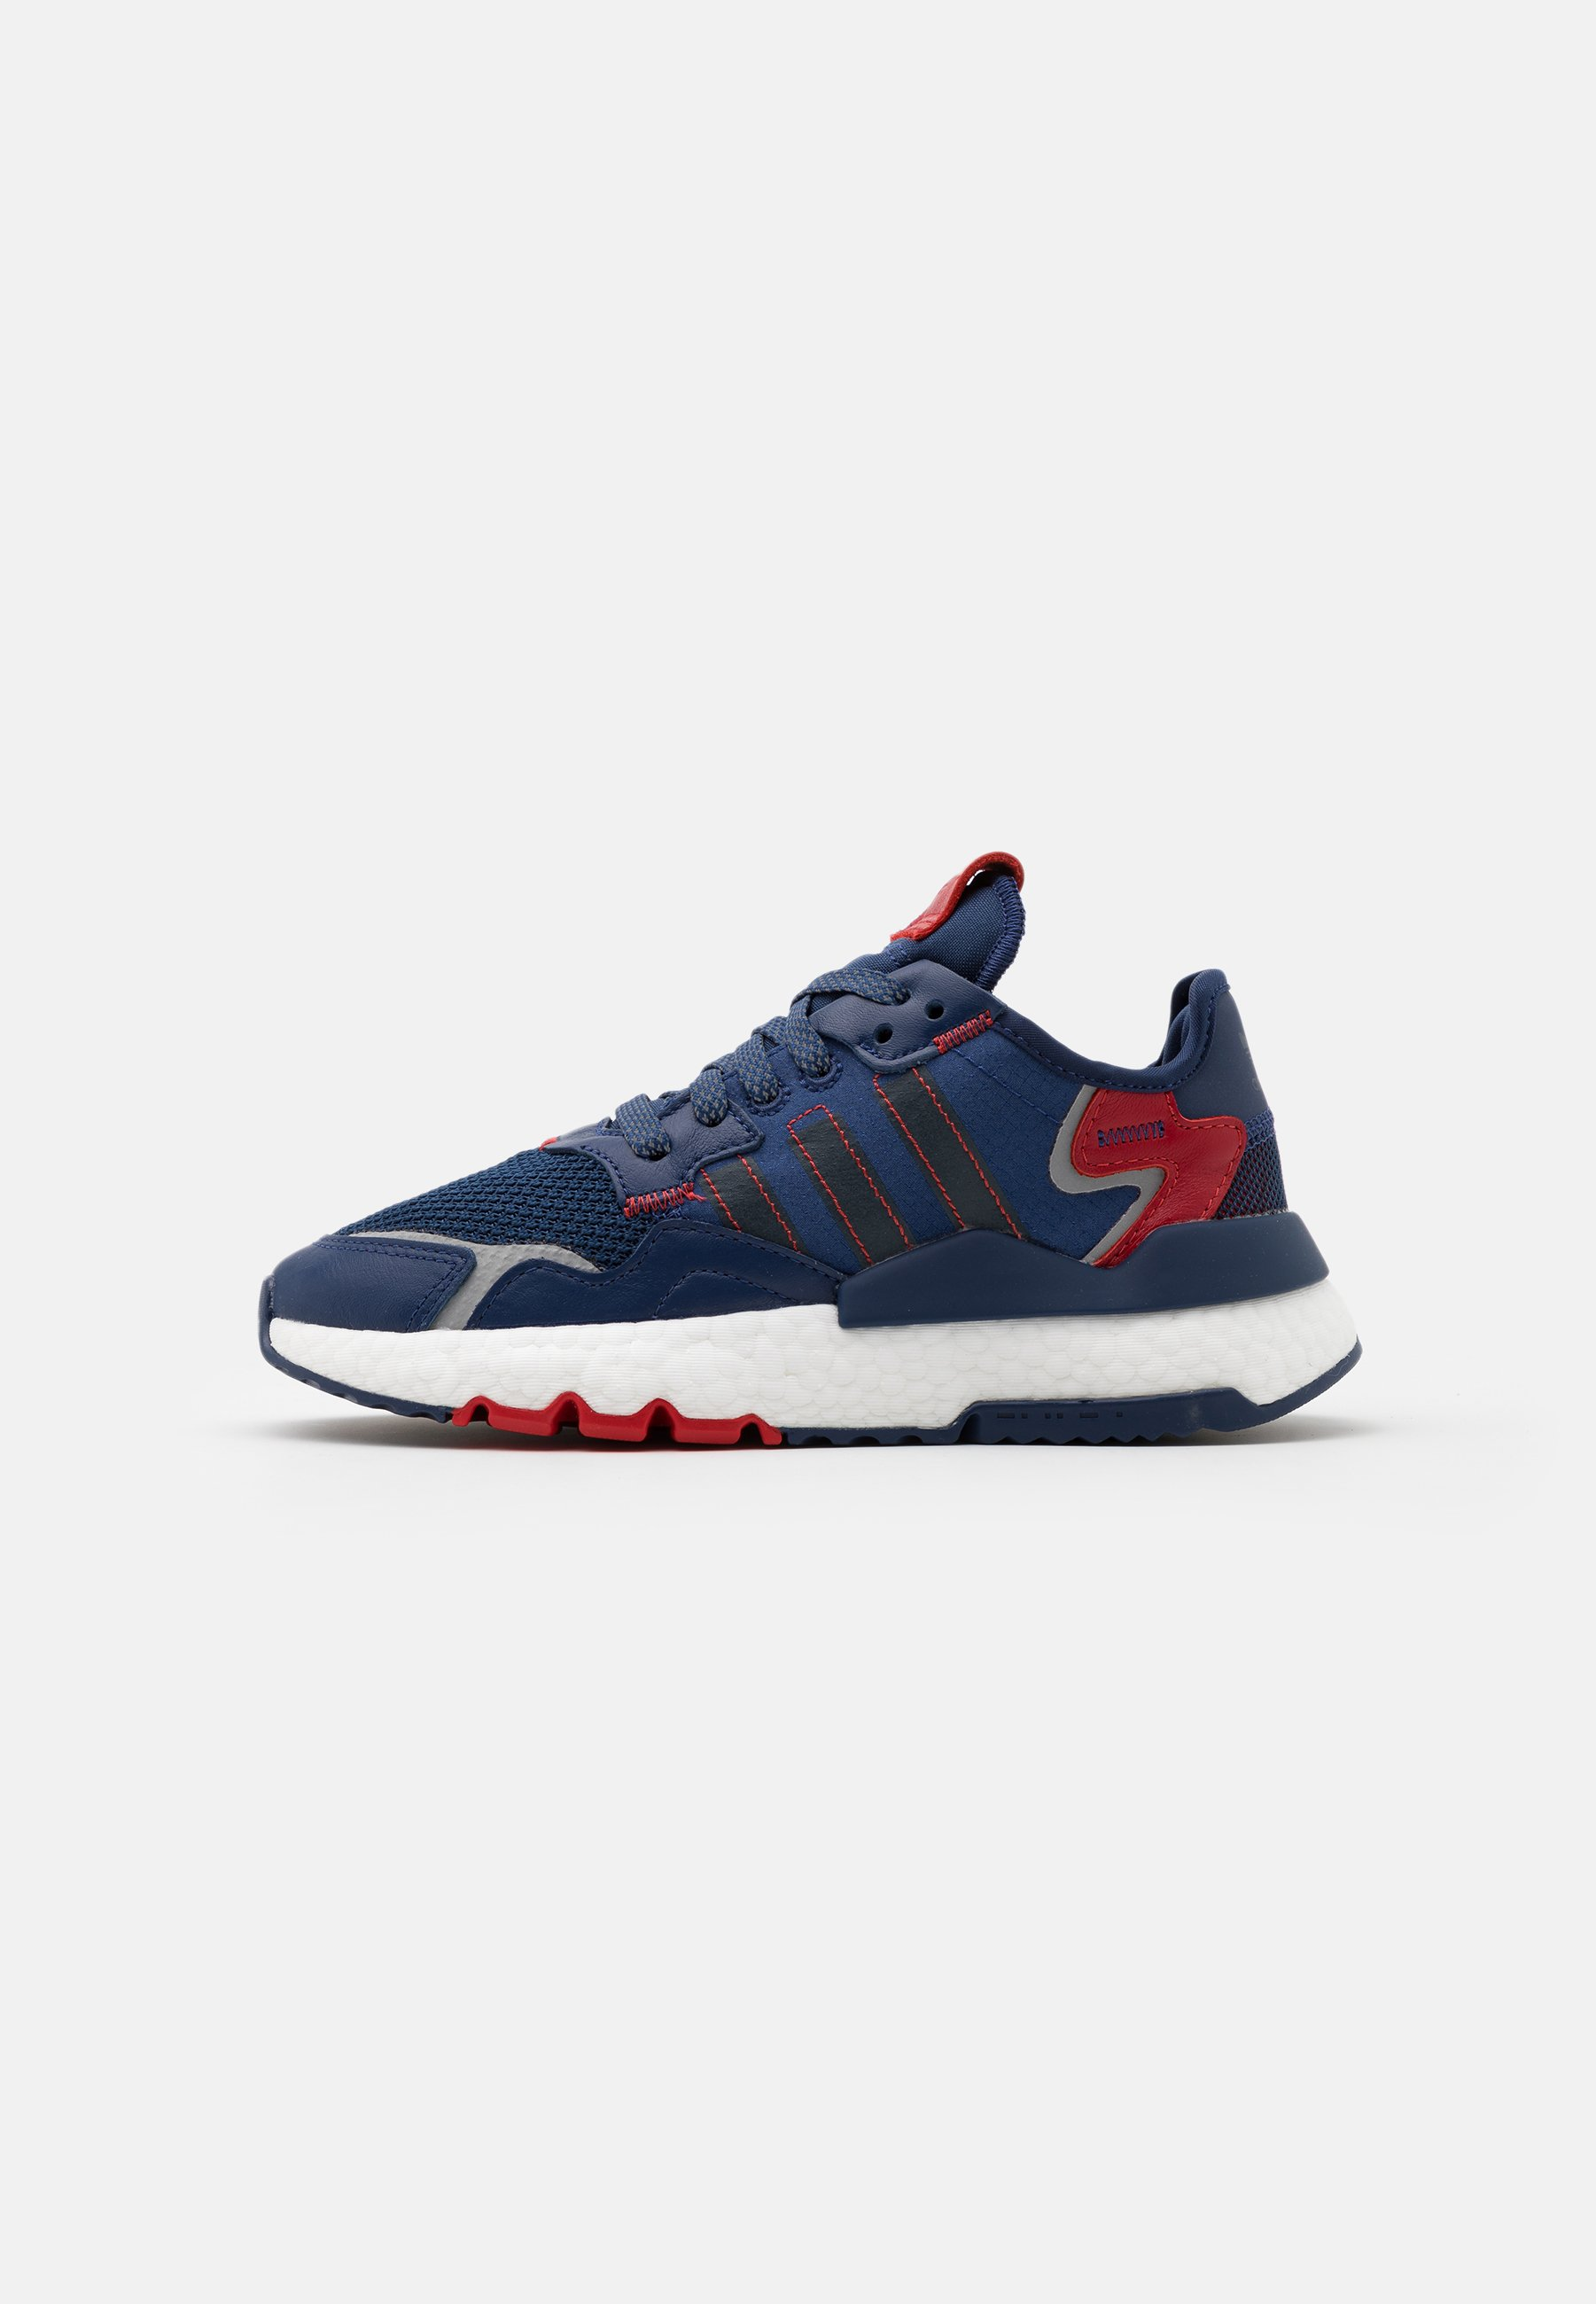 Adidas Originals Nite Jogger Boost Sports Inspired Shoes - Matalavartiset Tennarit Tech Indigo/collegiate Navy/scarlet